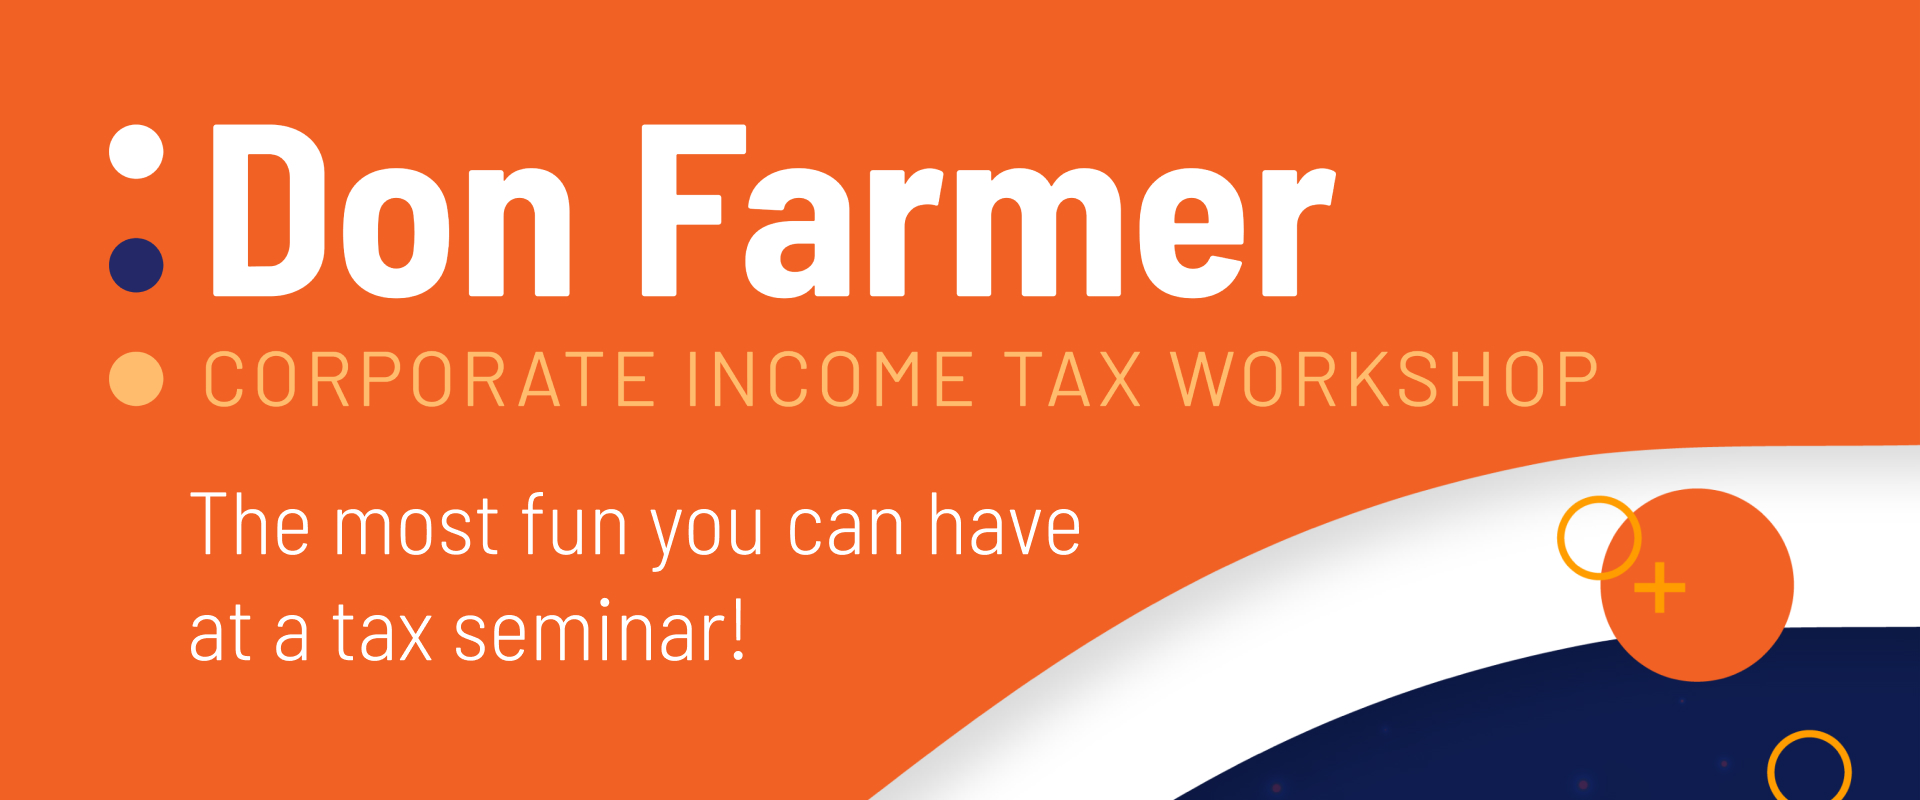 Don Farmer's 2020 Corporate Income Tax Workshop (Maryland Webcast)